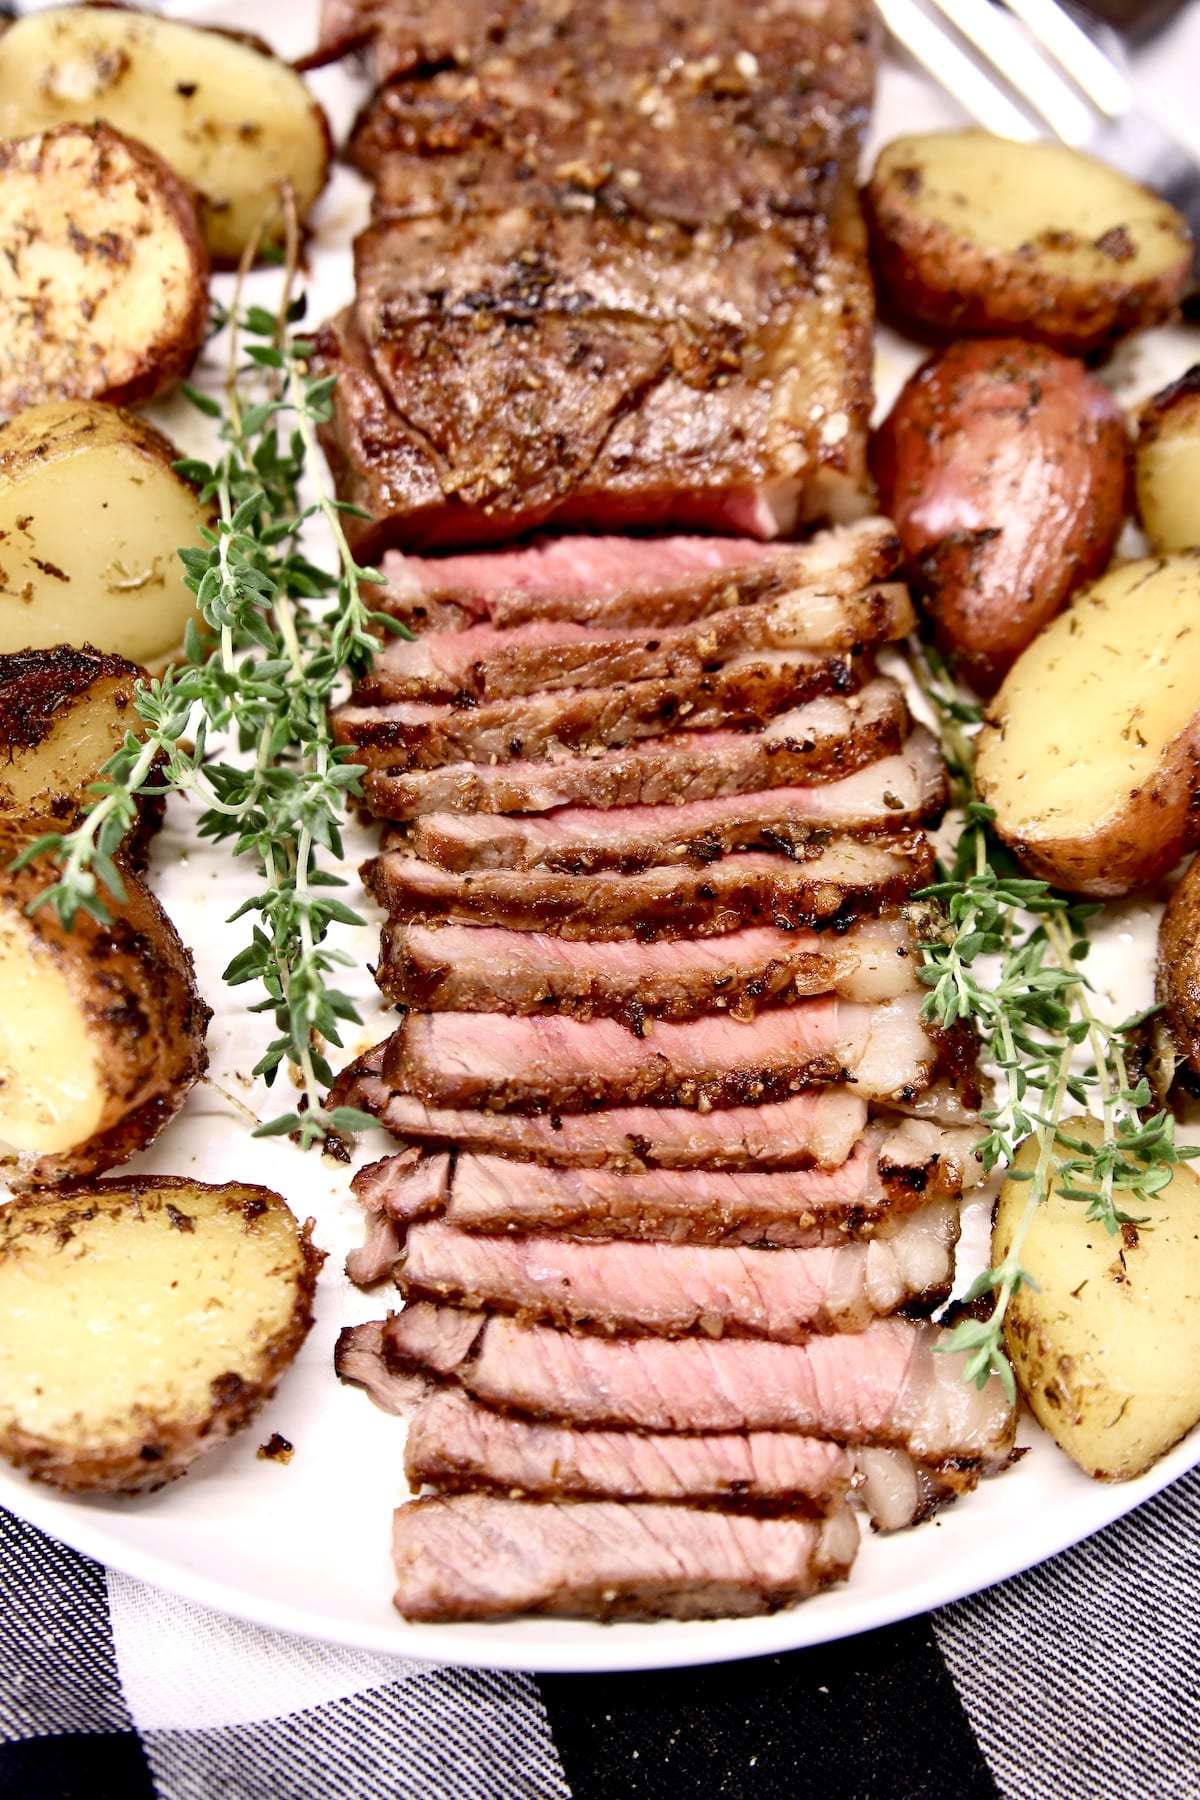 grilled NY Strip Steak sliced on a plate with potatoes